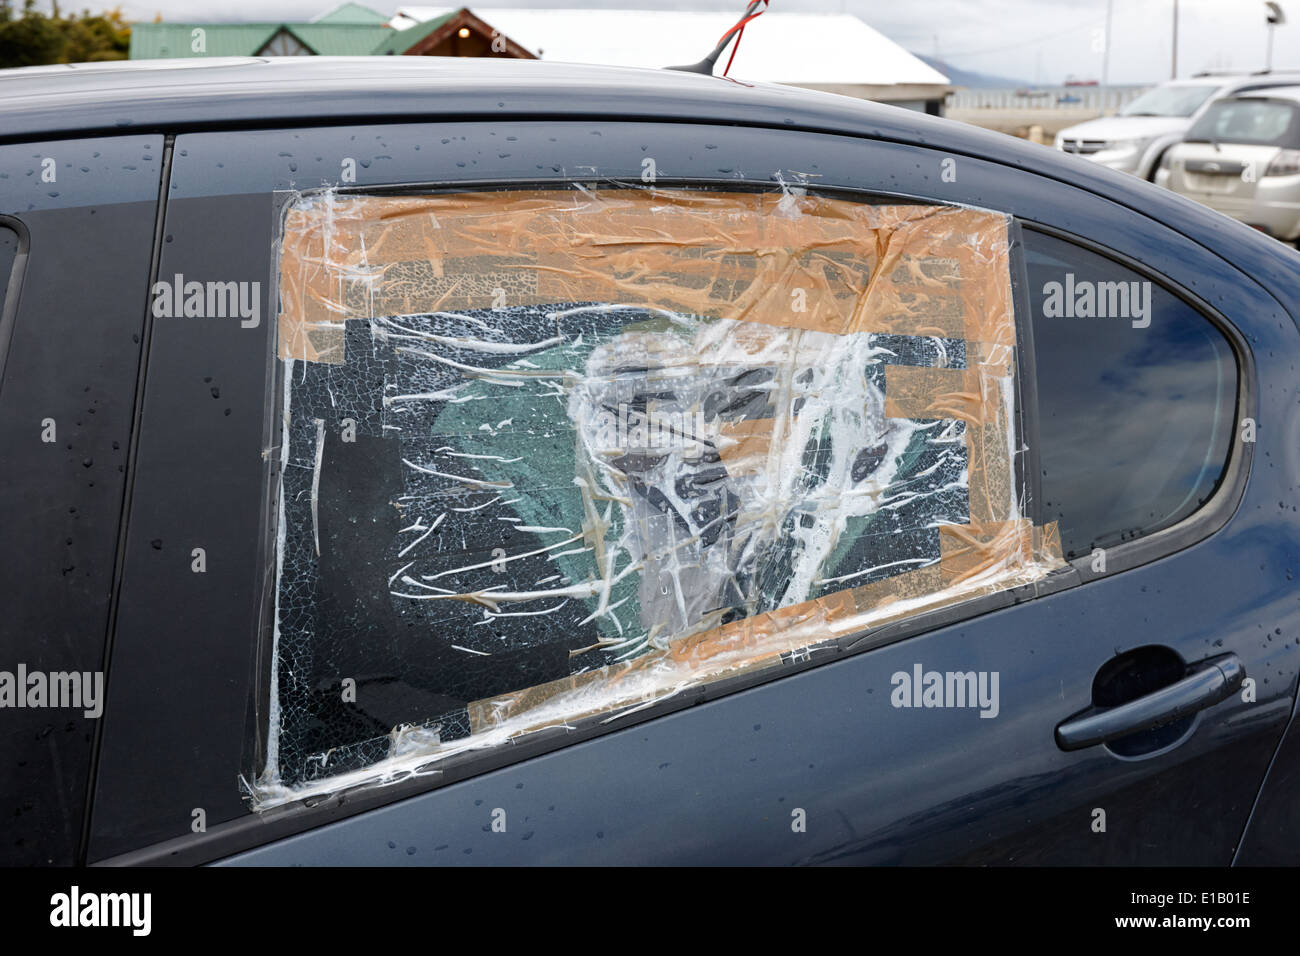 Smashed Broken Rear Car Door Window Taped Up As A